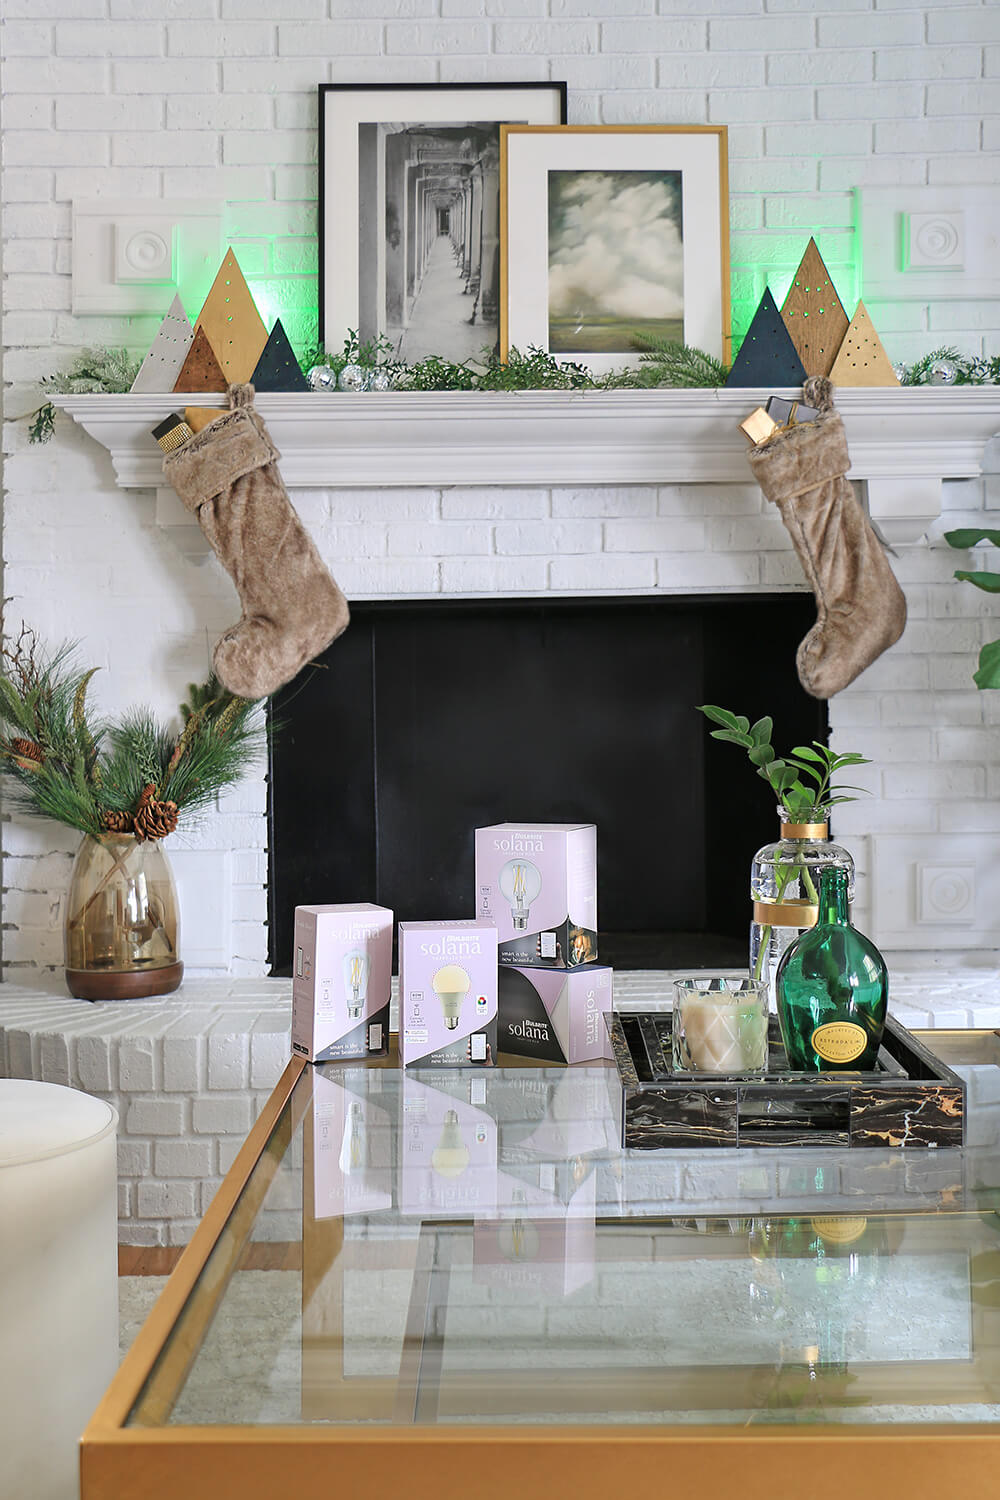 Bulbrite-Solana-bulbs-in-holiday-living-room